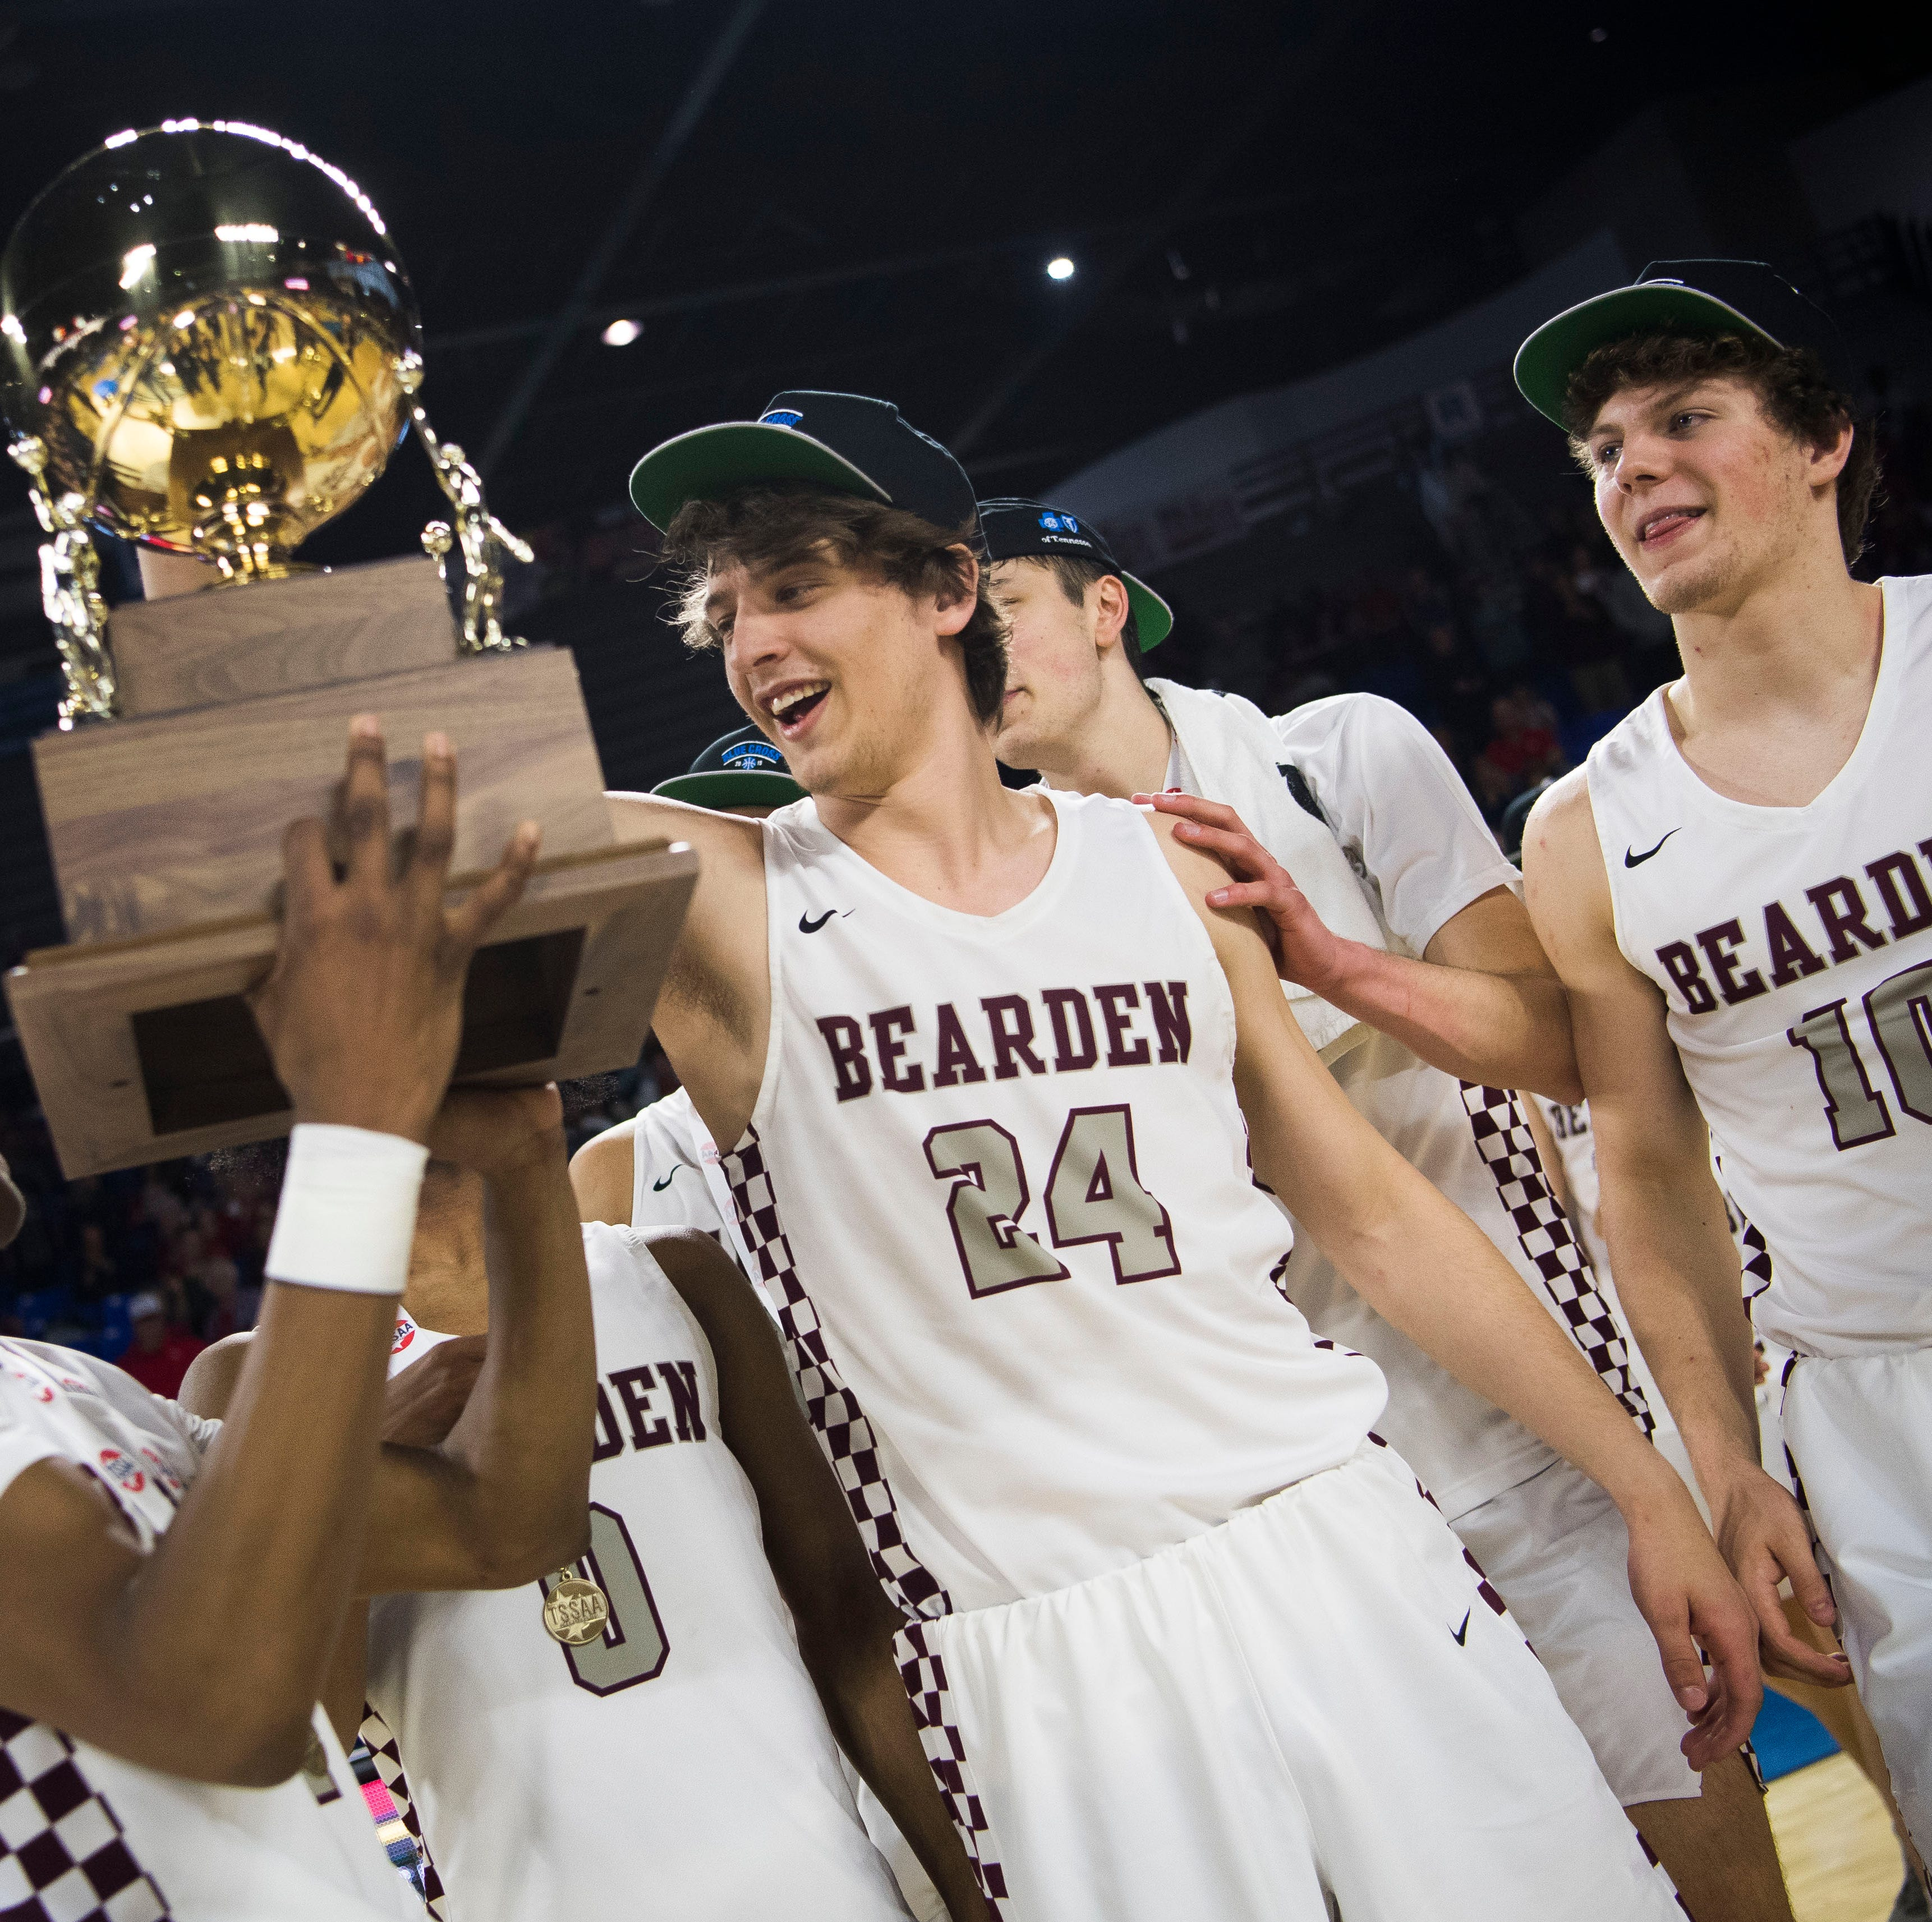 Bearden beats three-time defending champ Memphis East for first state title